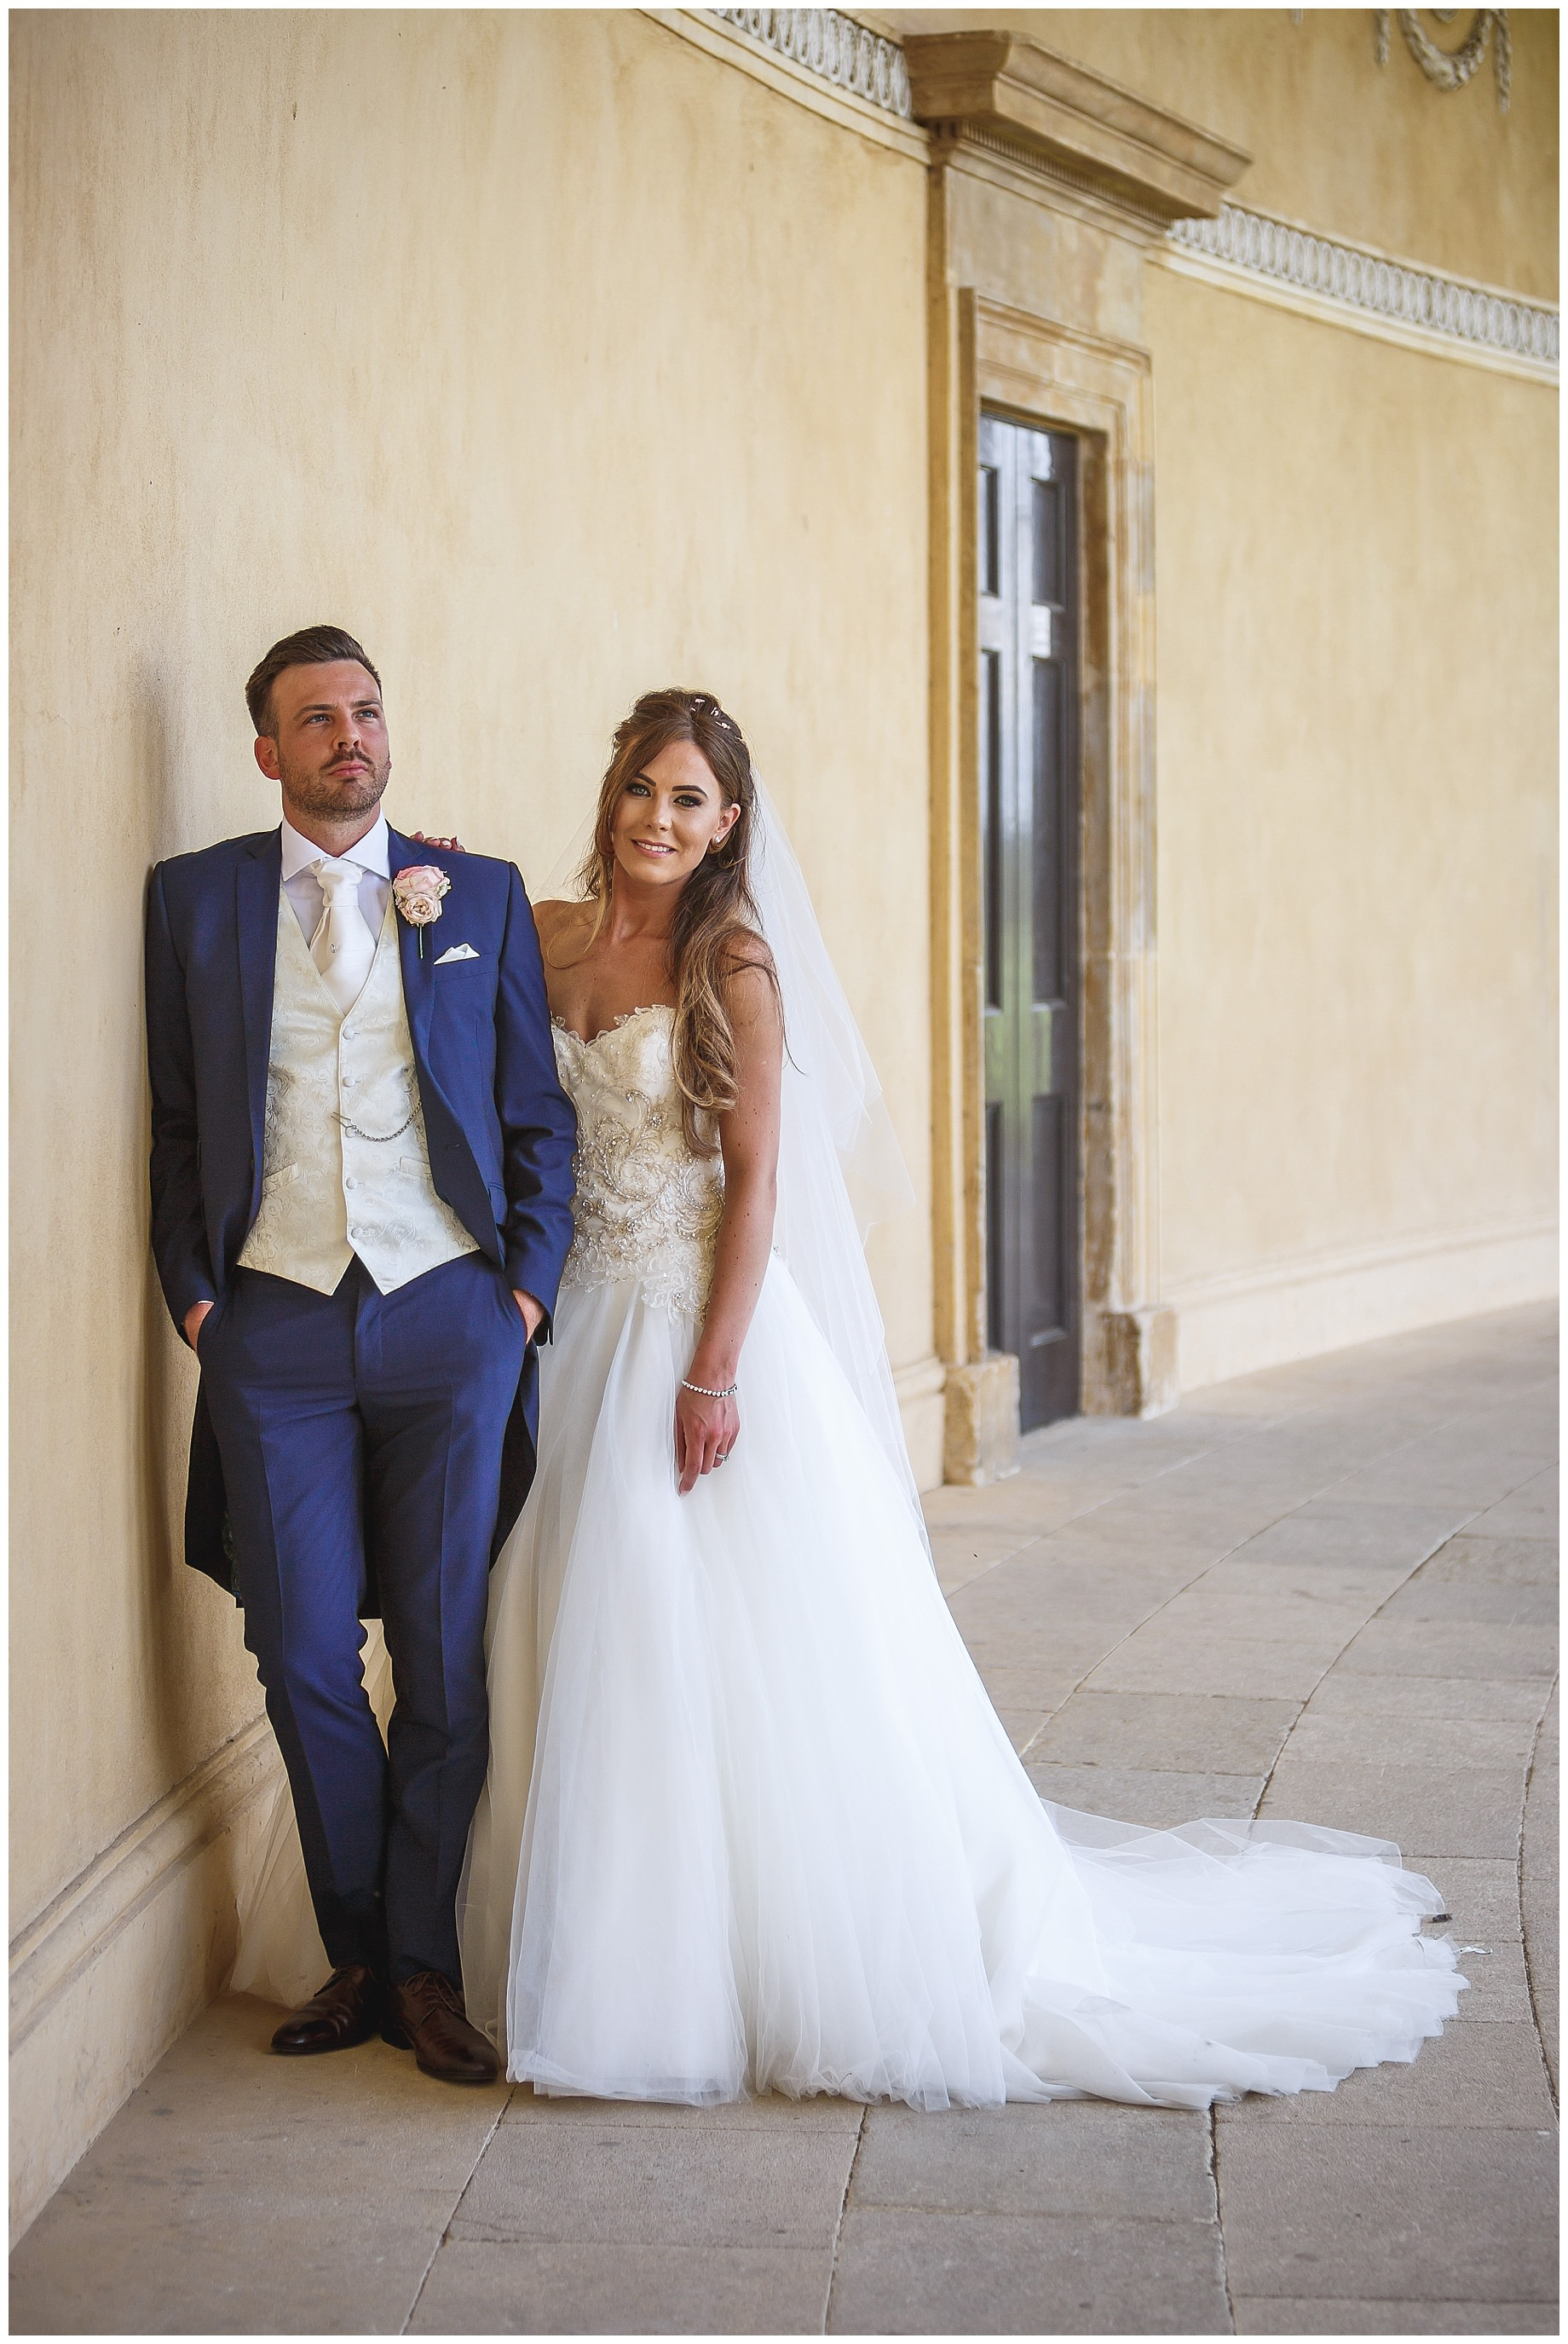 Stowe House Wedding Photos